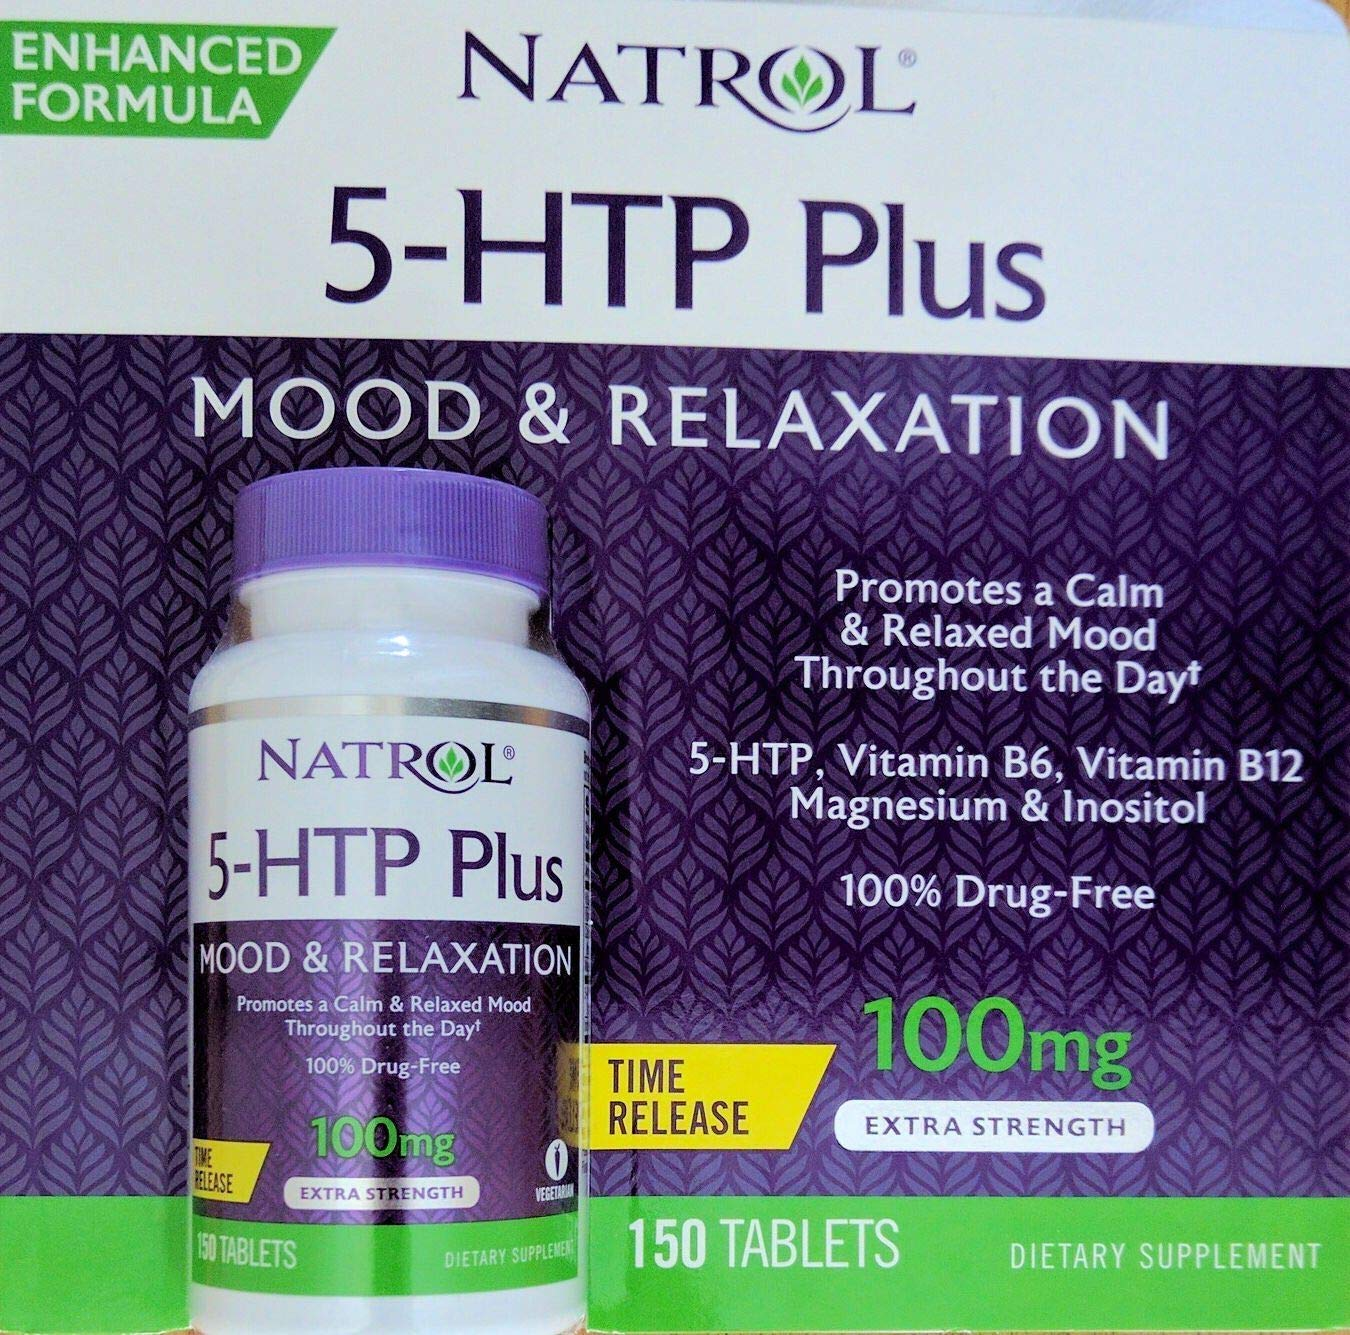 Natrol 5-HTP Plus Mood and Relaxation Enhancer, 100mg, 150 Time Release Tablets (300)